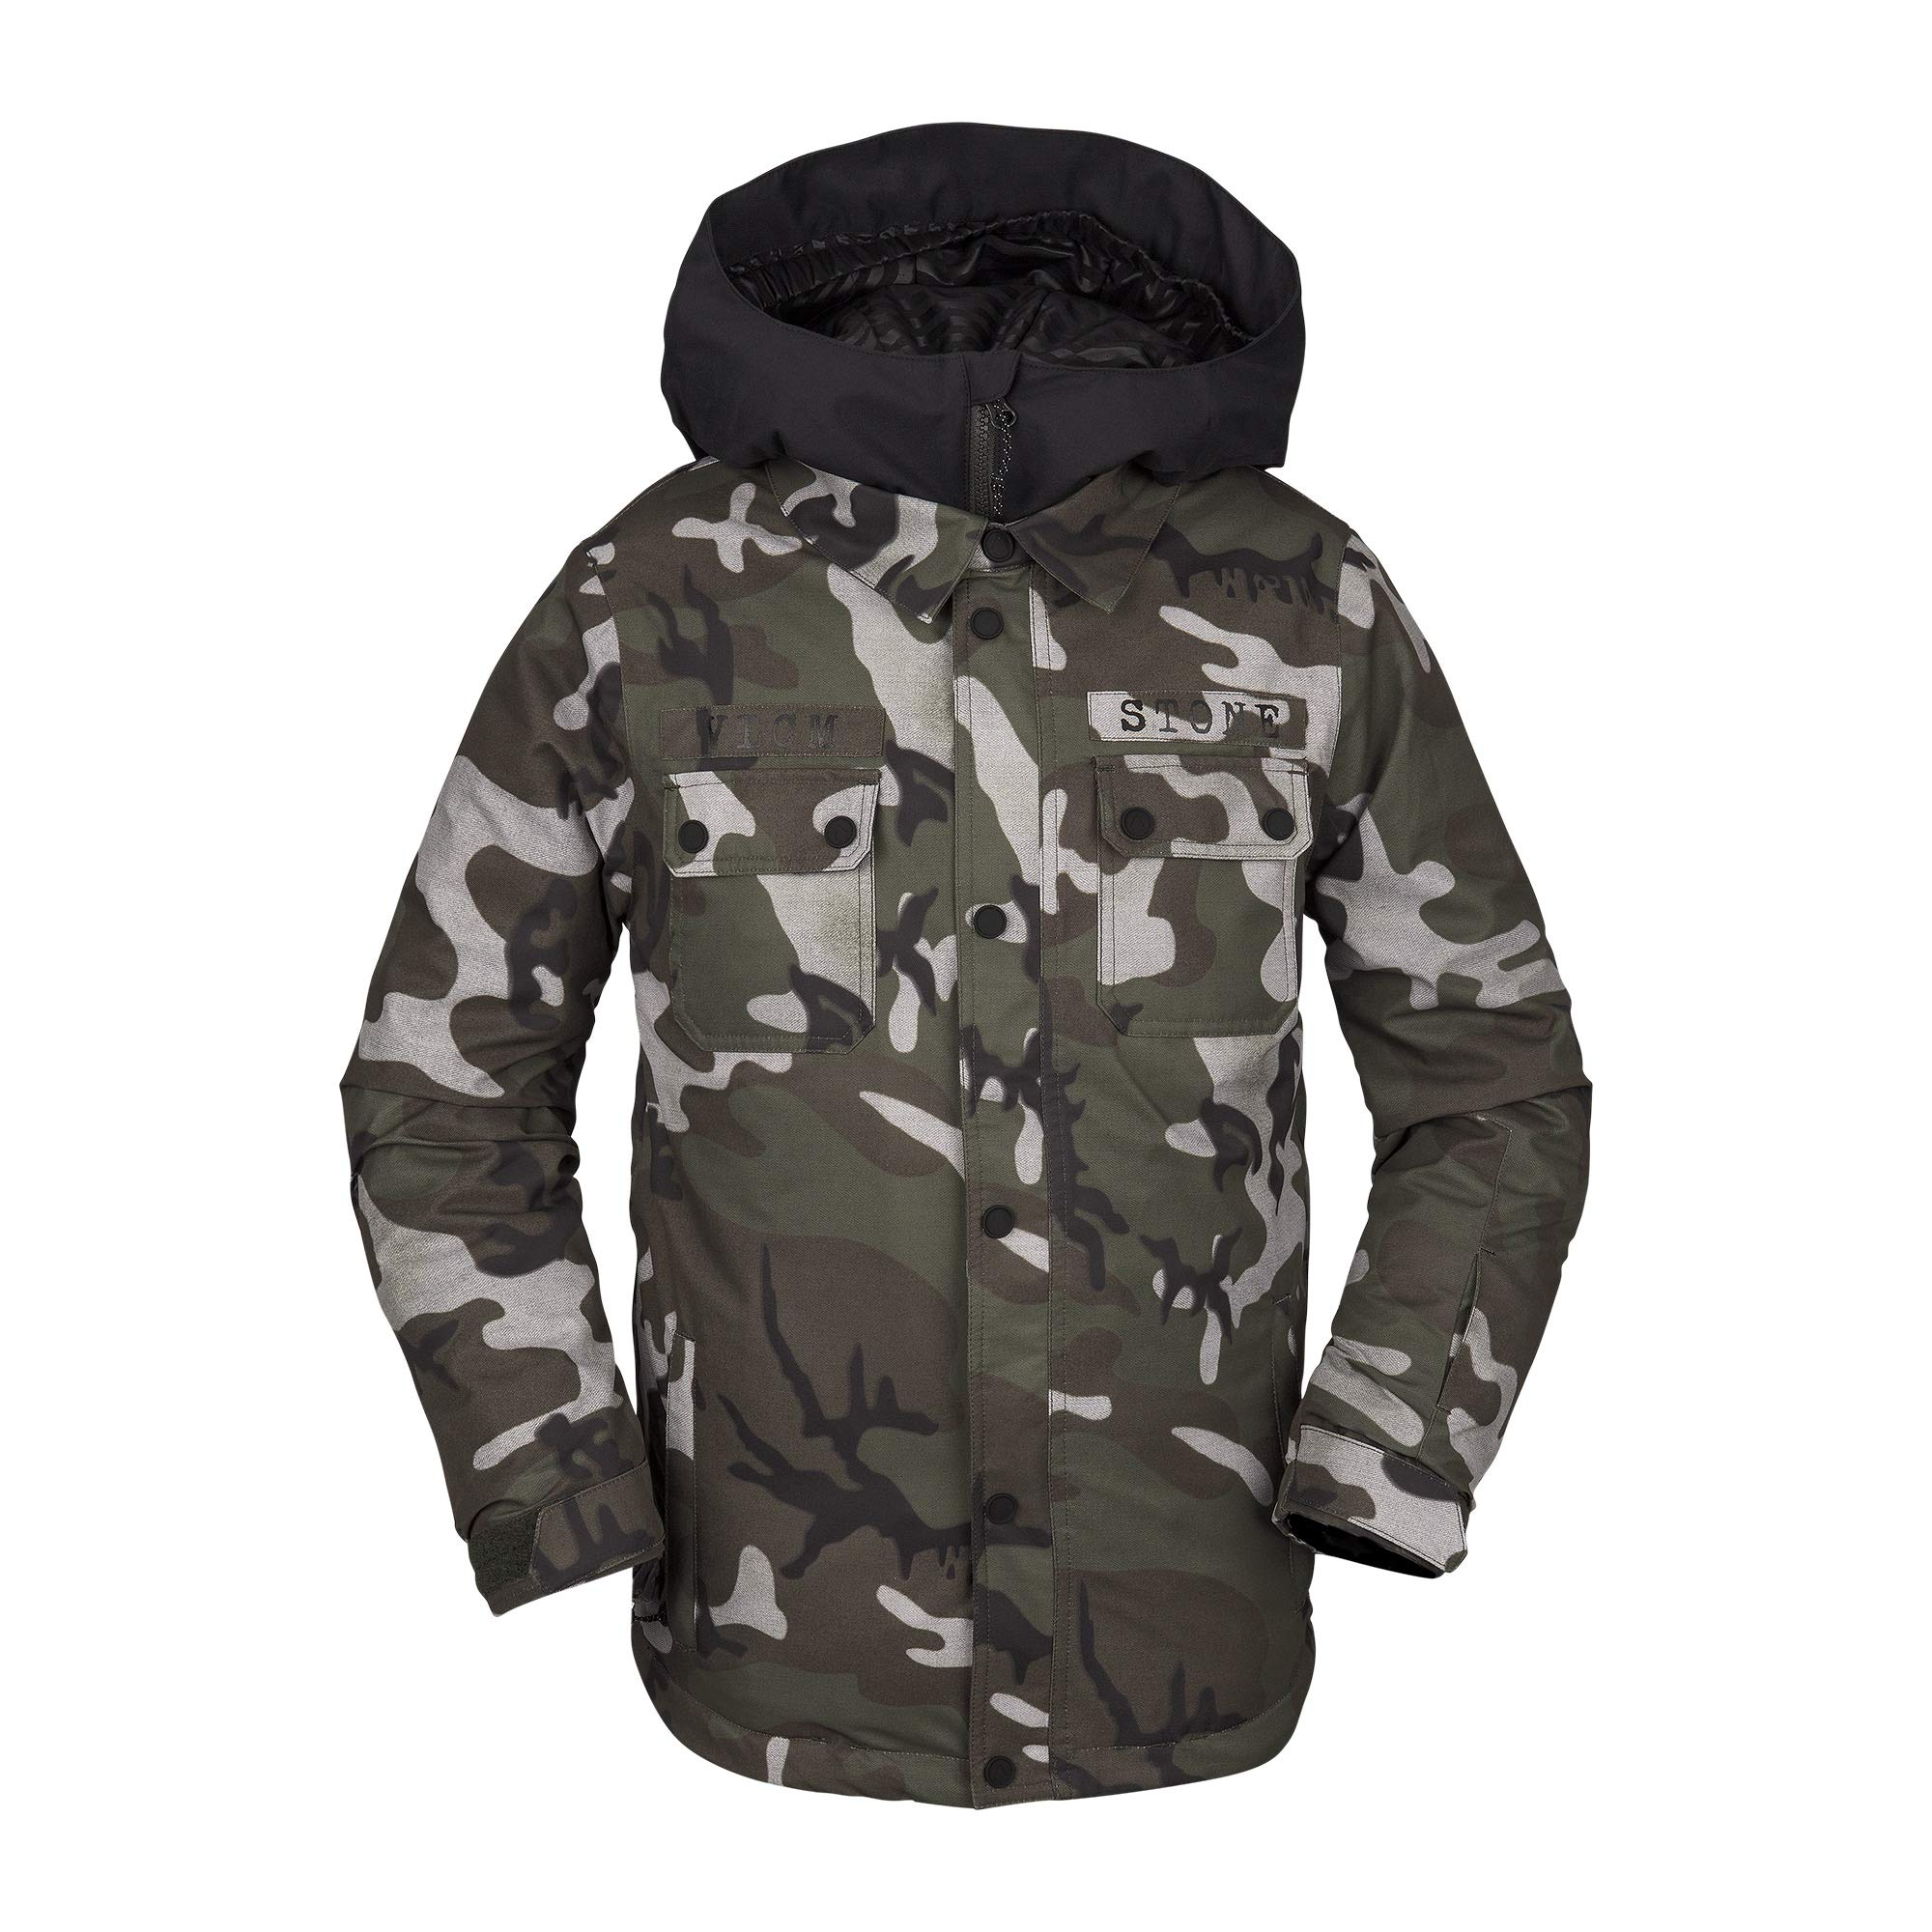 Volcom Boys' Big Neolithic Insulated 2 Layer Shell Snow Jacket, gi Camo, Extra Small by Volcom